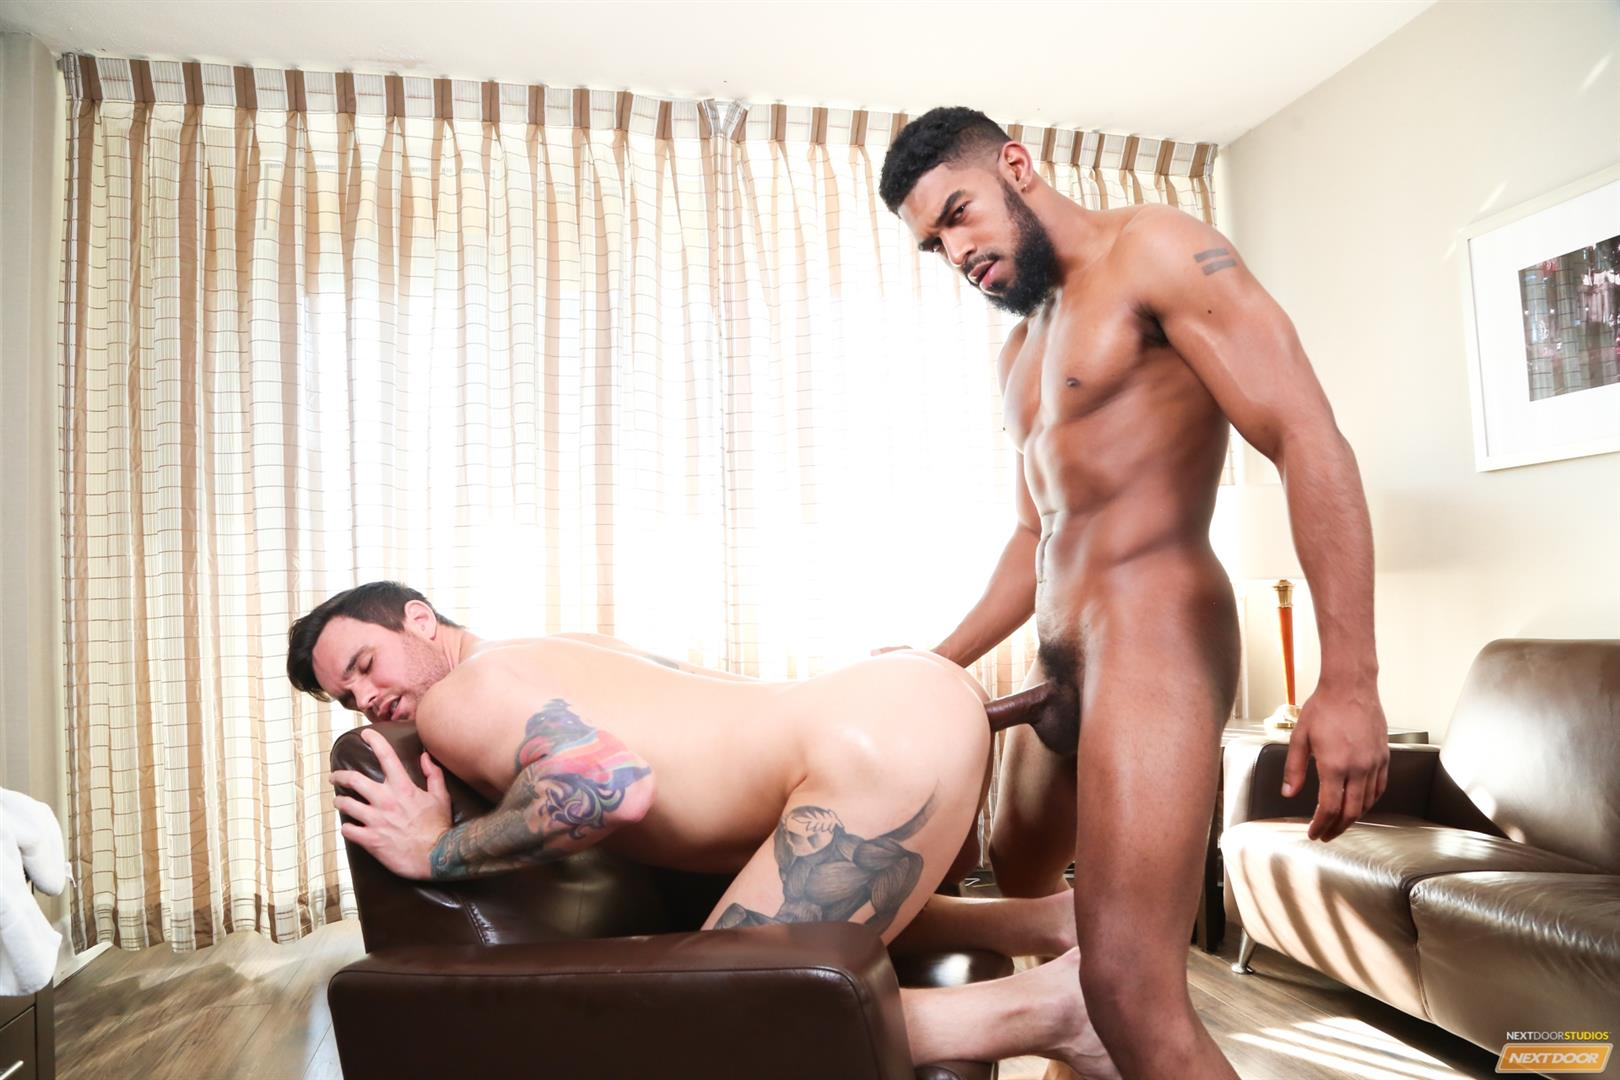 Next-Door-Ebony-XL-and-Beau-Reed-Interracial-bareback-fucking-big-black-cock-12 Bareback Flip Fucking With A Big Black Cock And A Hot White Ass